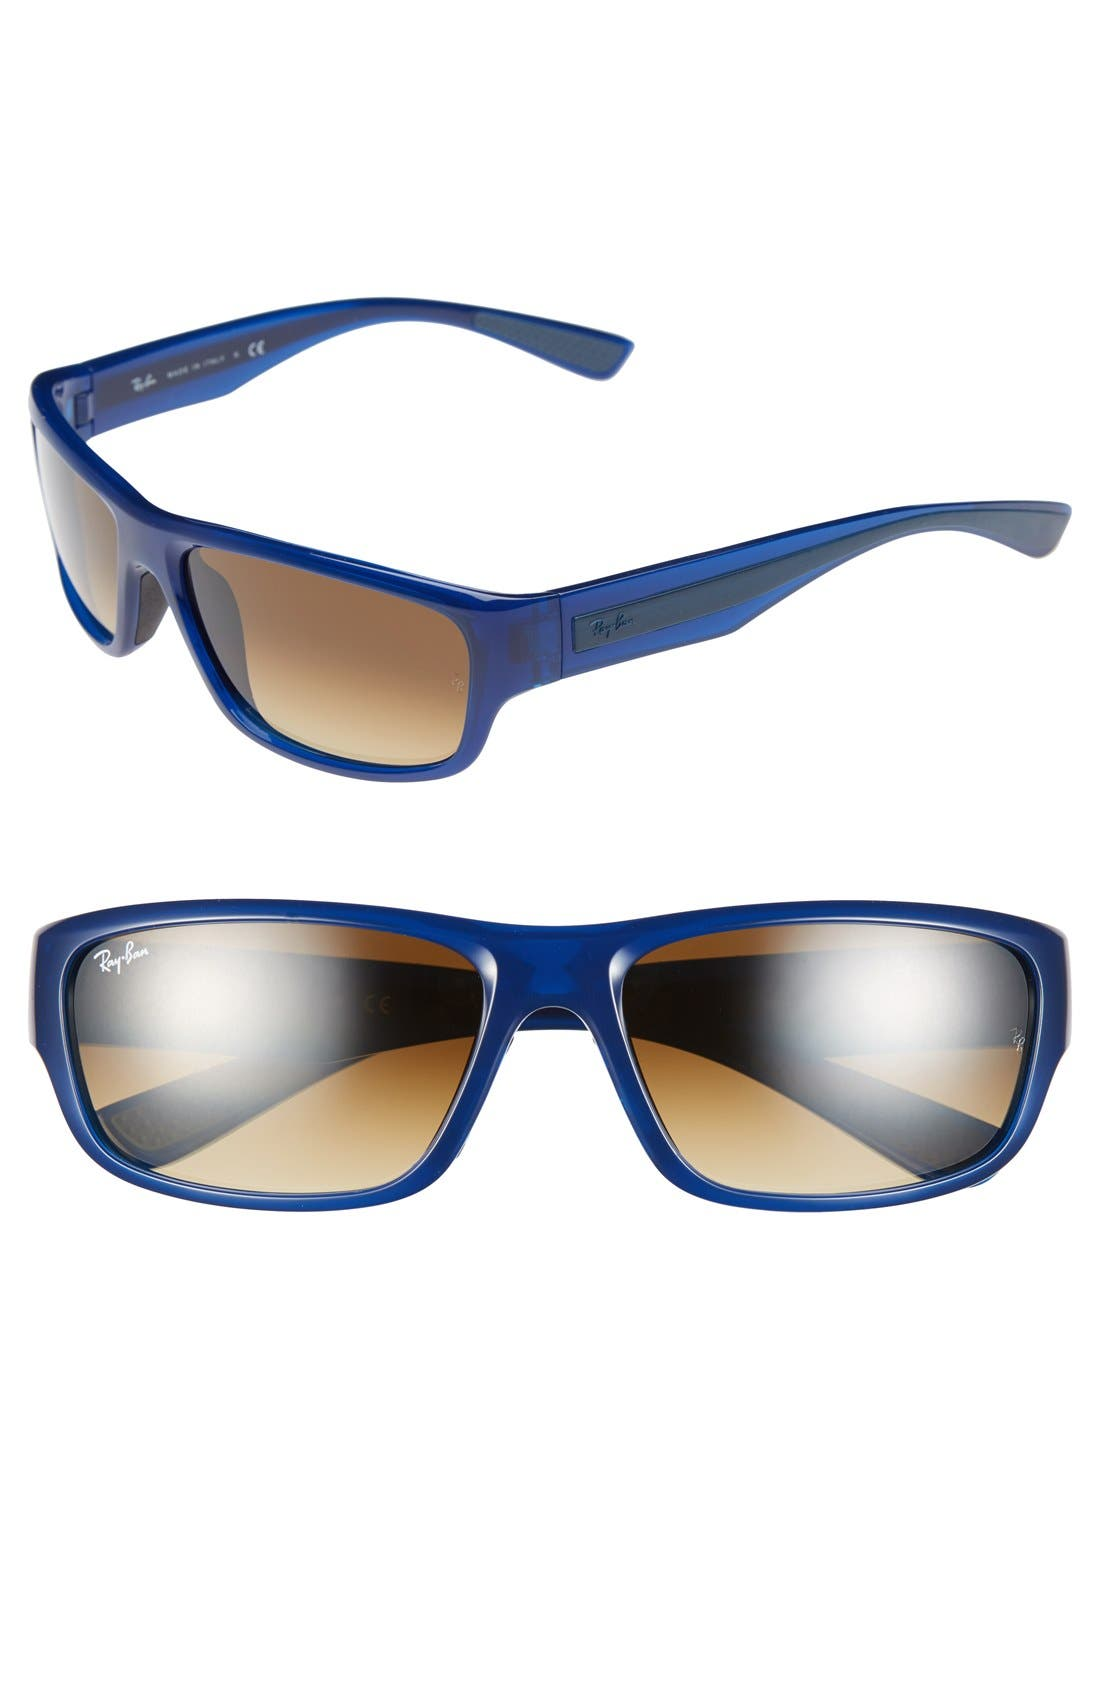 Main Image - Ray-Ban 61mm Sunglasses